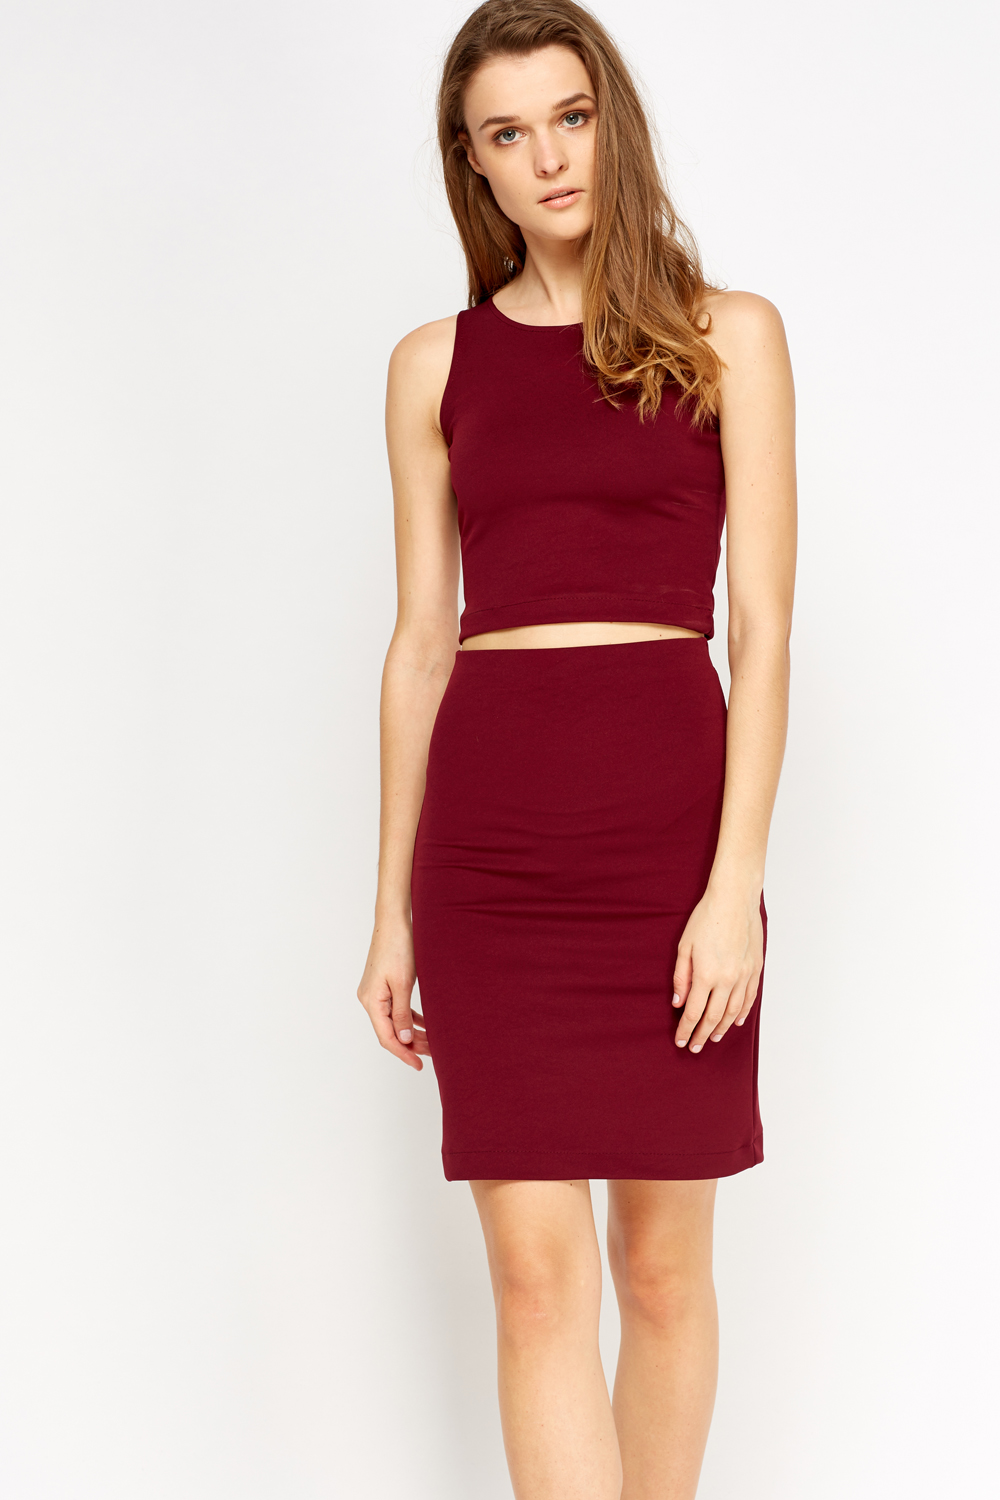 Crop Top And Skirt Co-Ord Set - Just £5